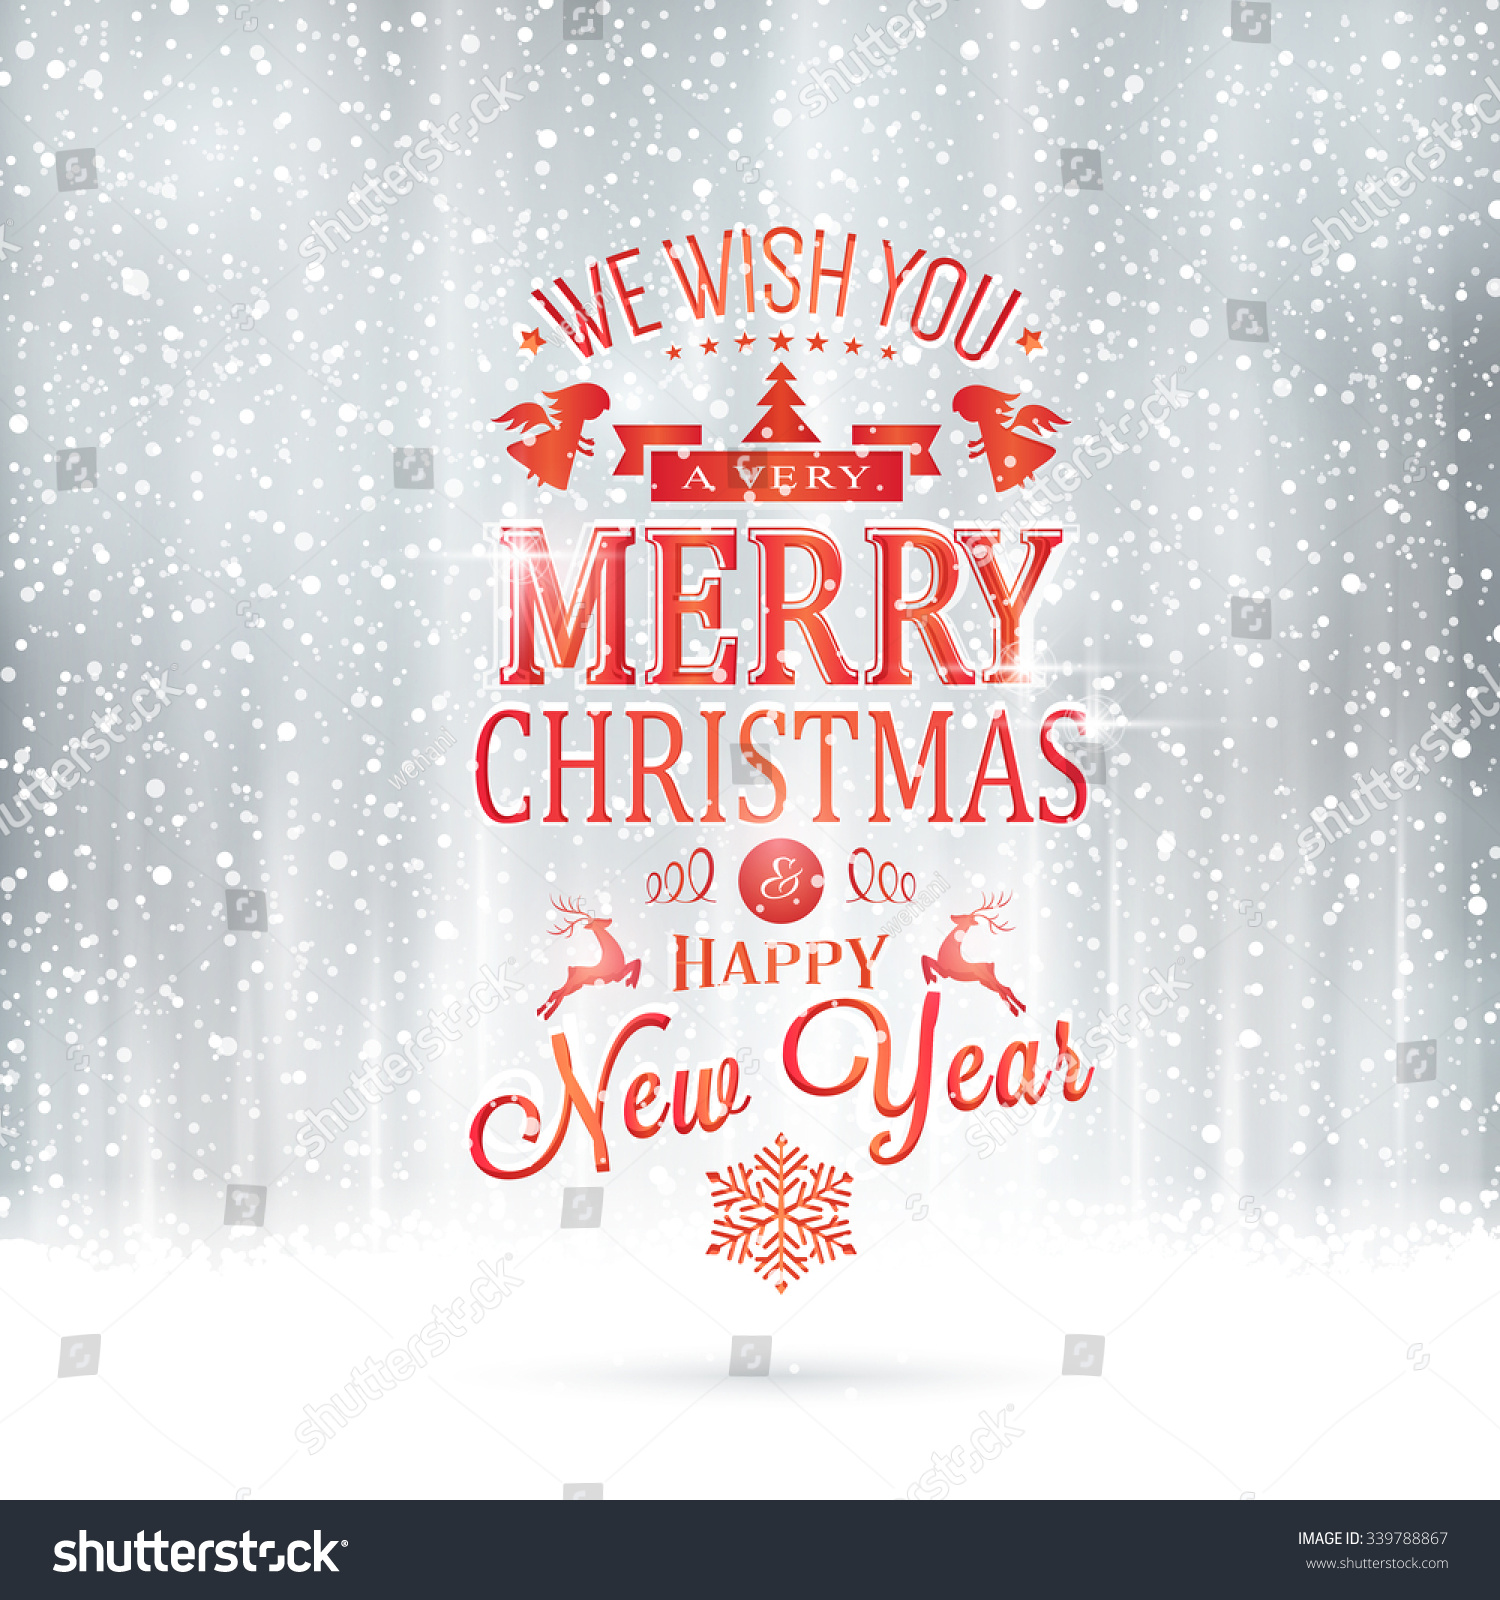 Very Merry Christmas.Red Wishing You Very Merry Christmas Stock Vector Royalty